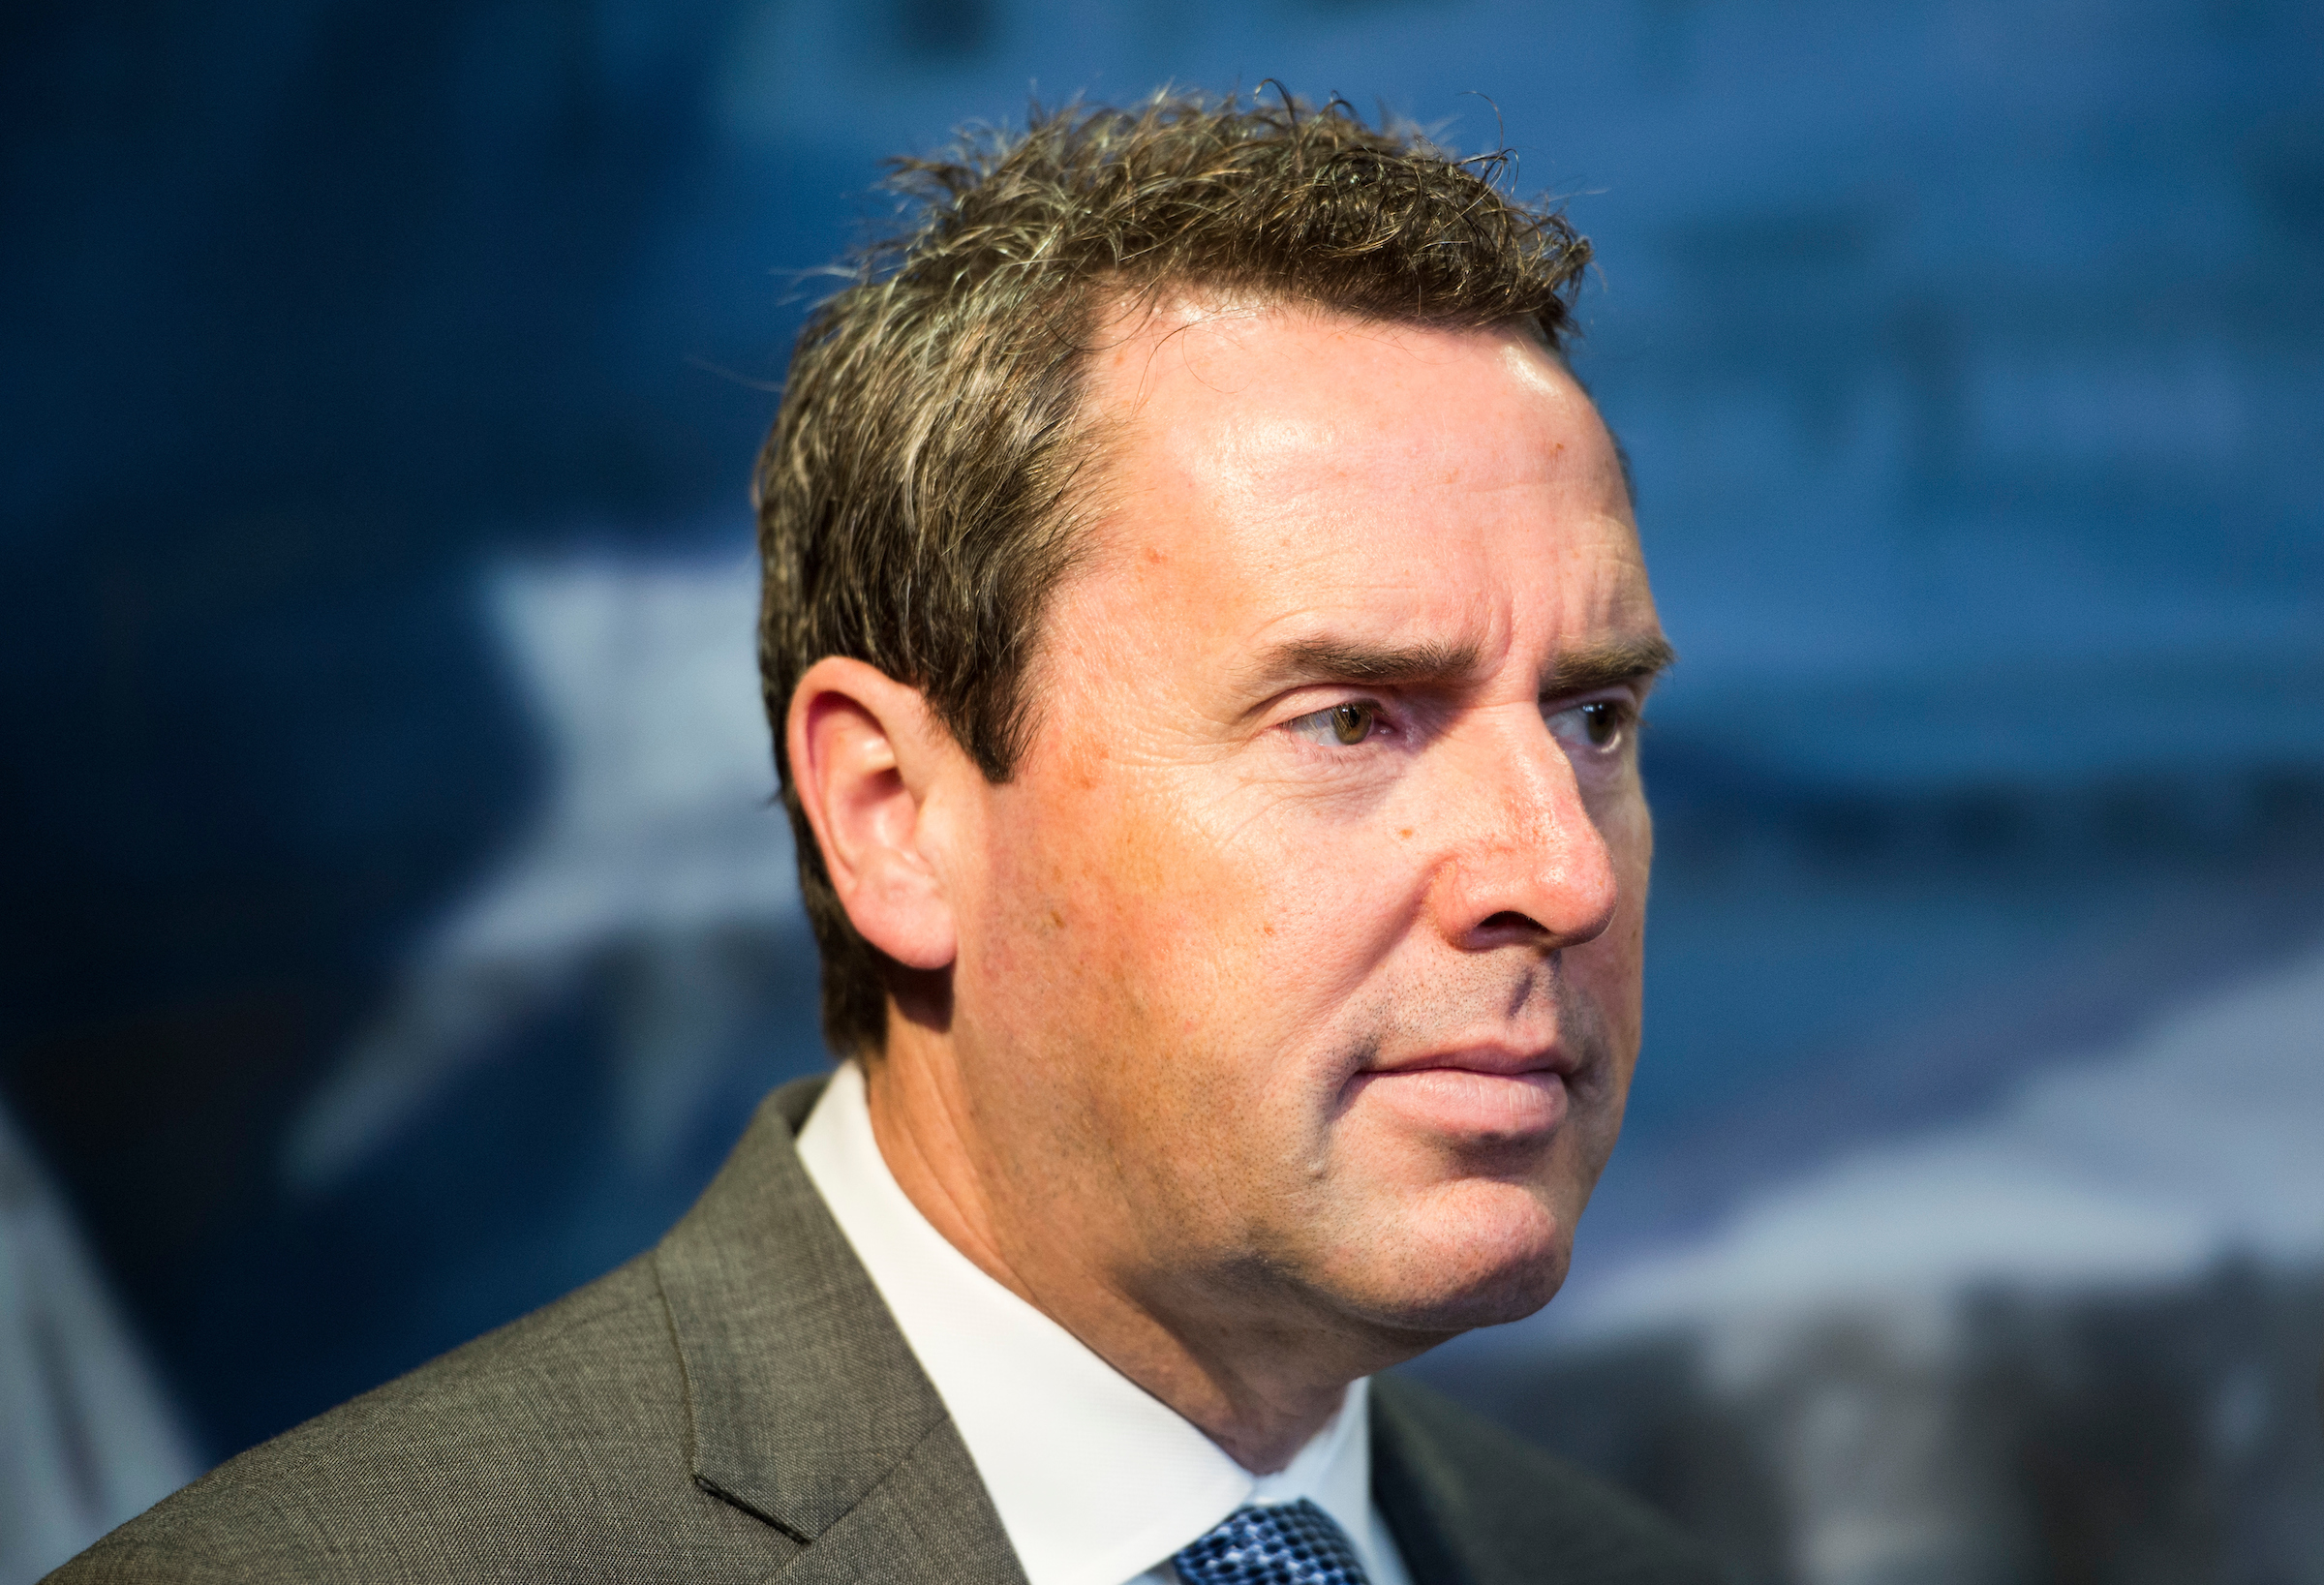 North Carolina Rep. Mark Walker doesn't view his first-term status as a disadvantage in seeking the chairmanship of the Republican Study Committee and has already racked up endorsements. (Bill Clark/CQ Roll Call file photo)